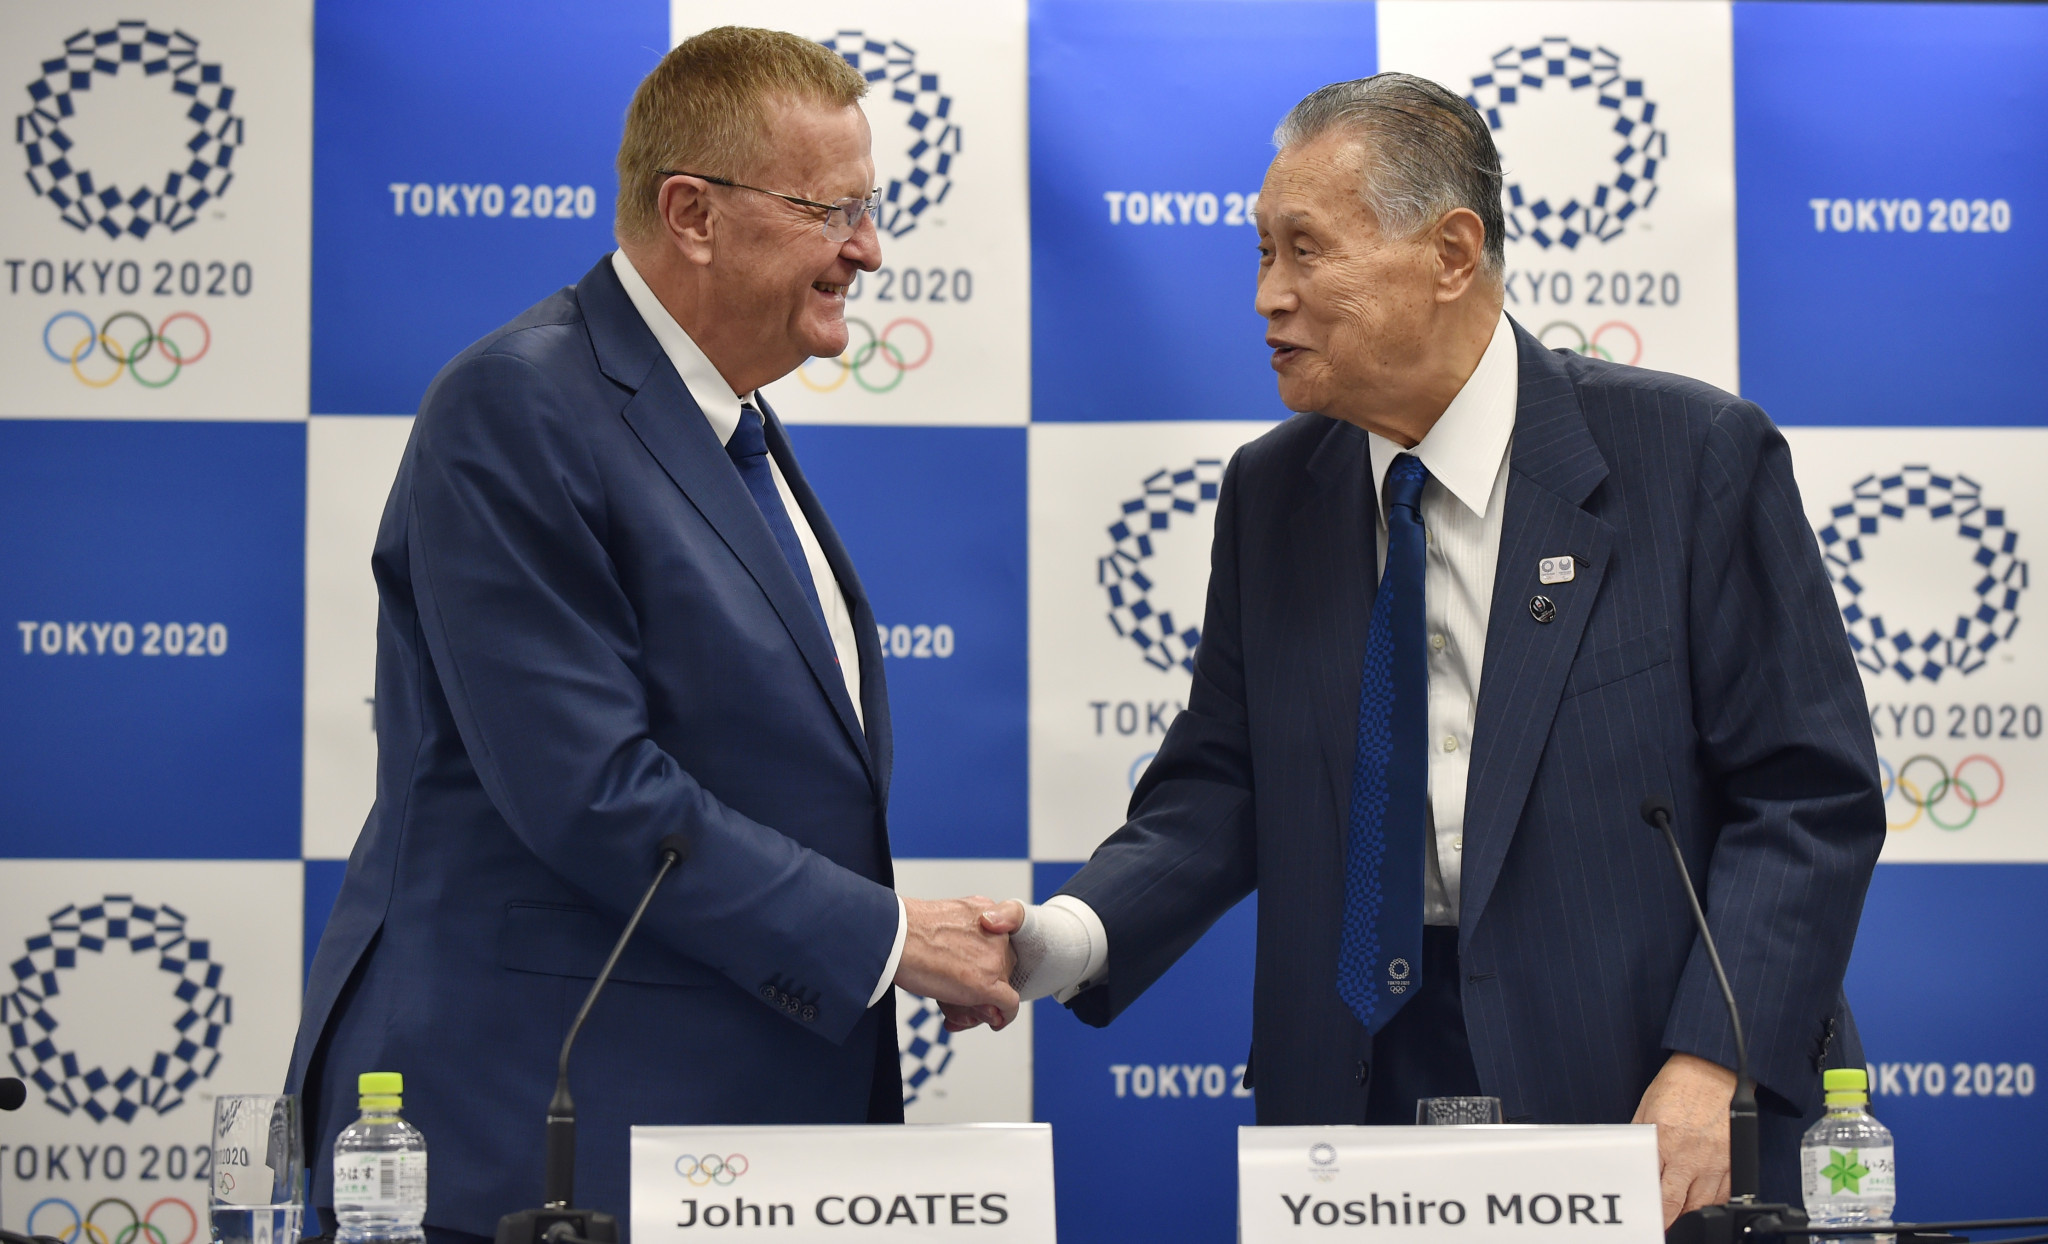 IOC Coordination Commission chairman John Coates was full of praise for Tokyo 2020 ©Getty Images